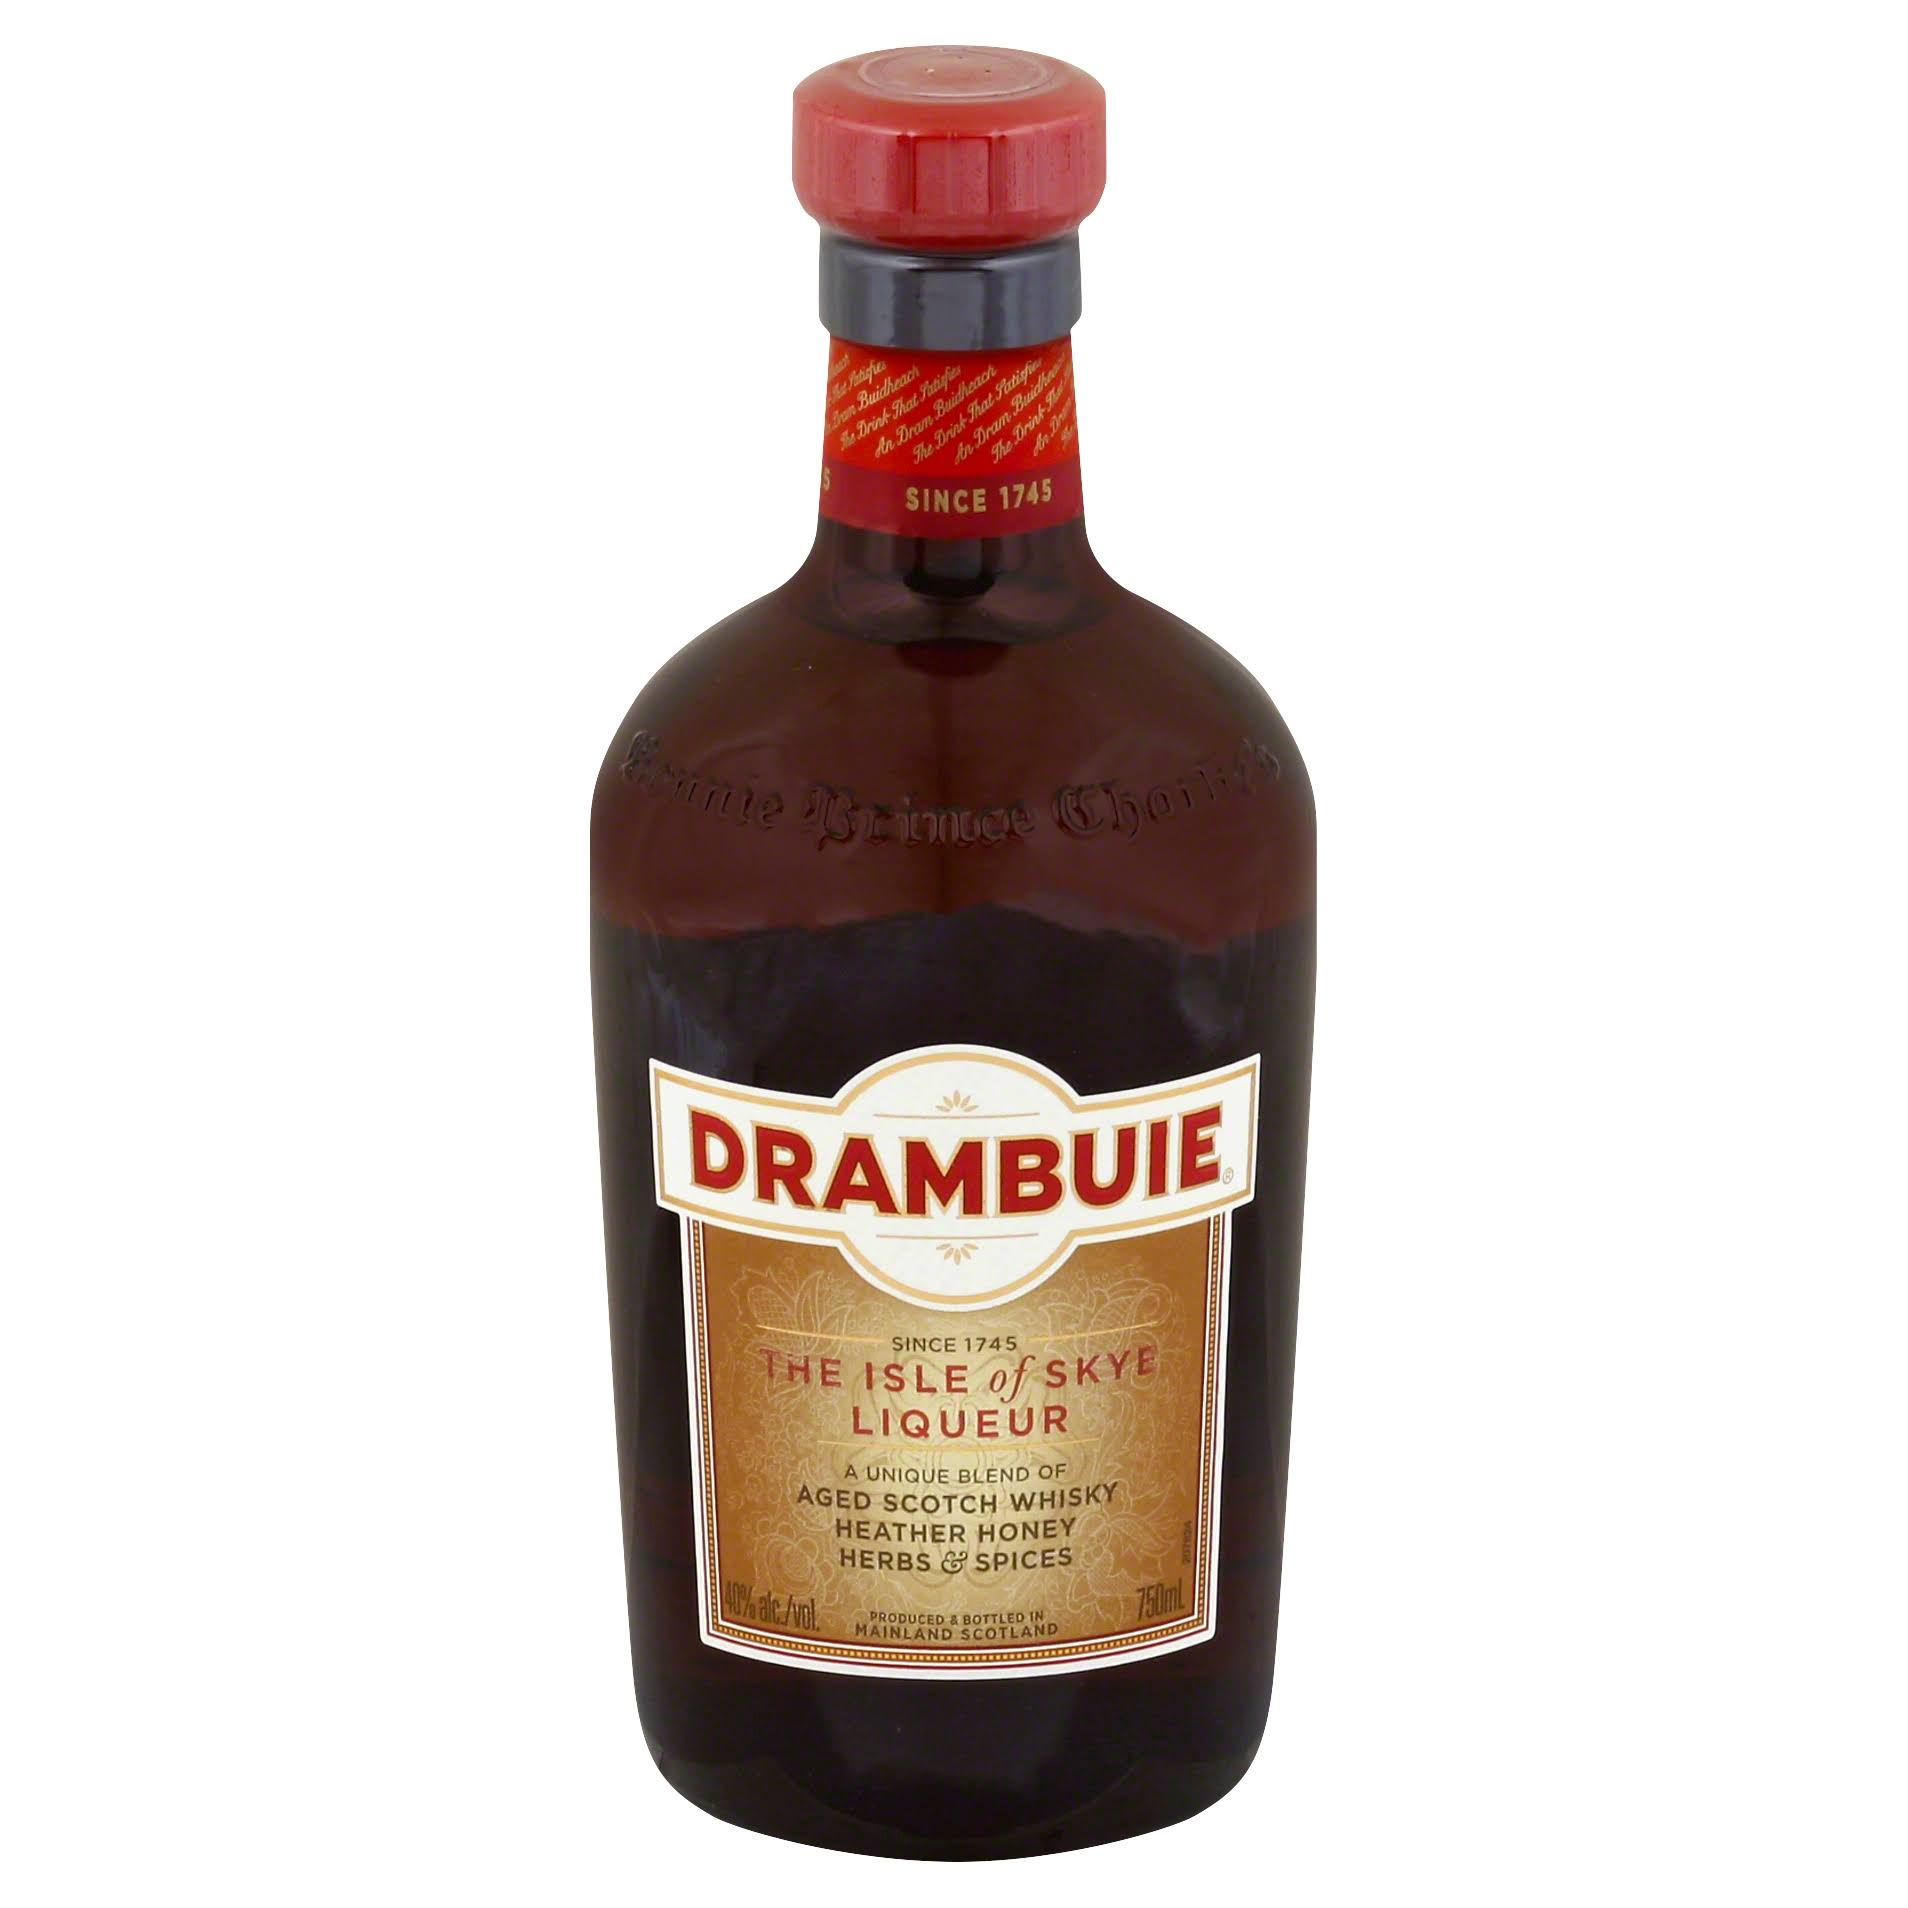 Drambuie Scotch Whisky - 750 ml bottle